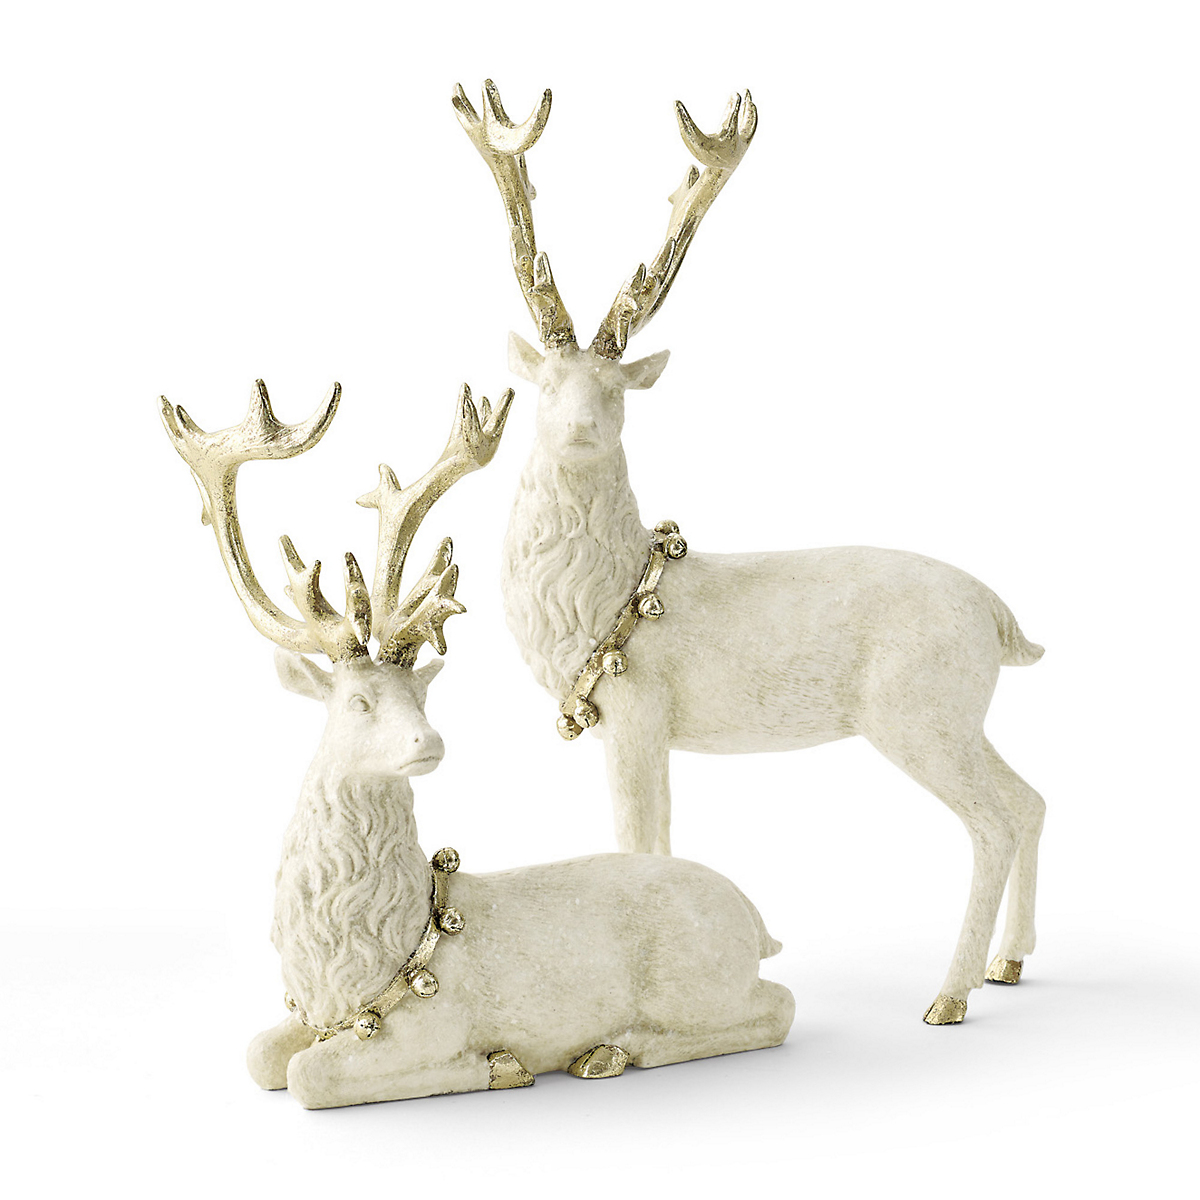 White & Gold Reindeer Figures, Set Of 2